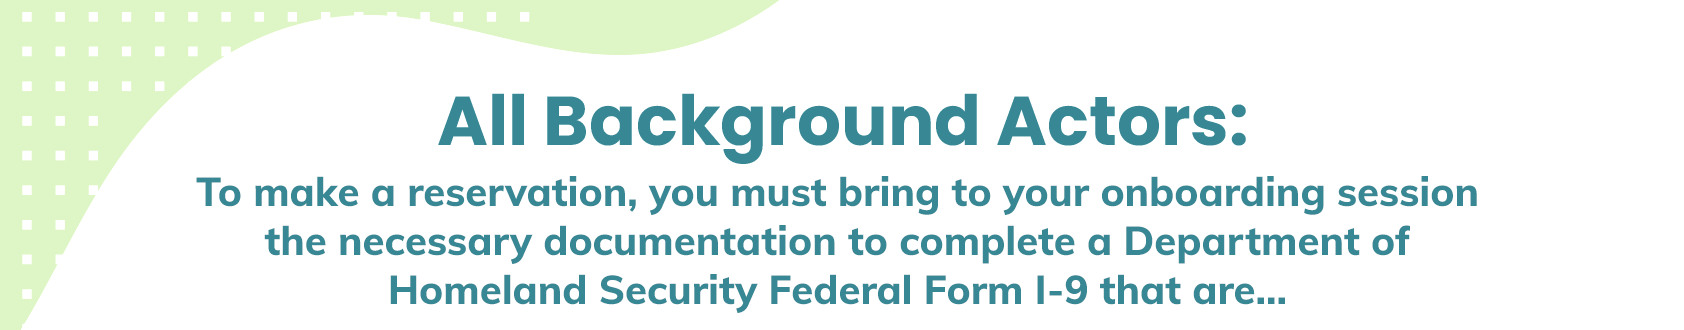 All Background Actors: To make a reservation, you must bring to your onboarding session the necessary documentation to complete a Department of Homeland Security Federal Form I-9 that are: